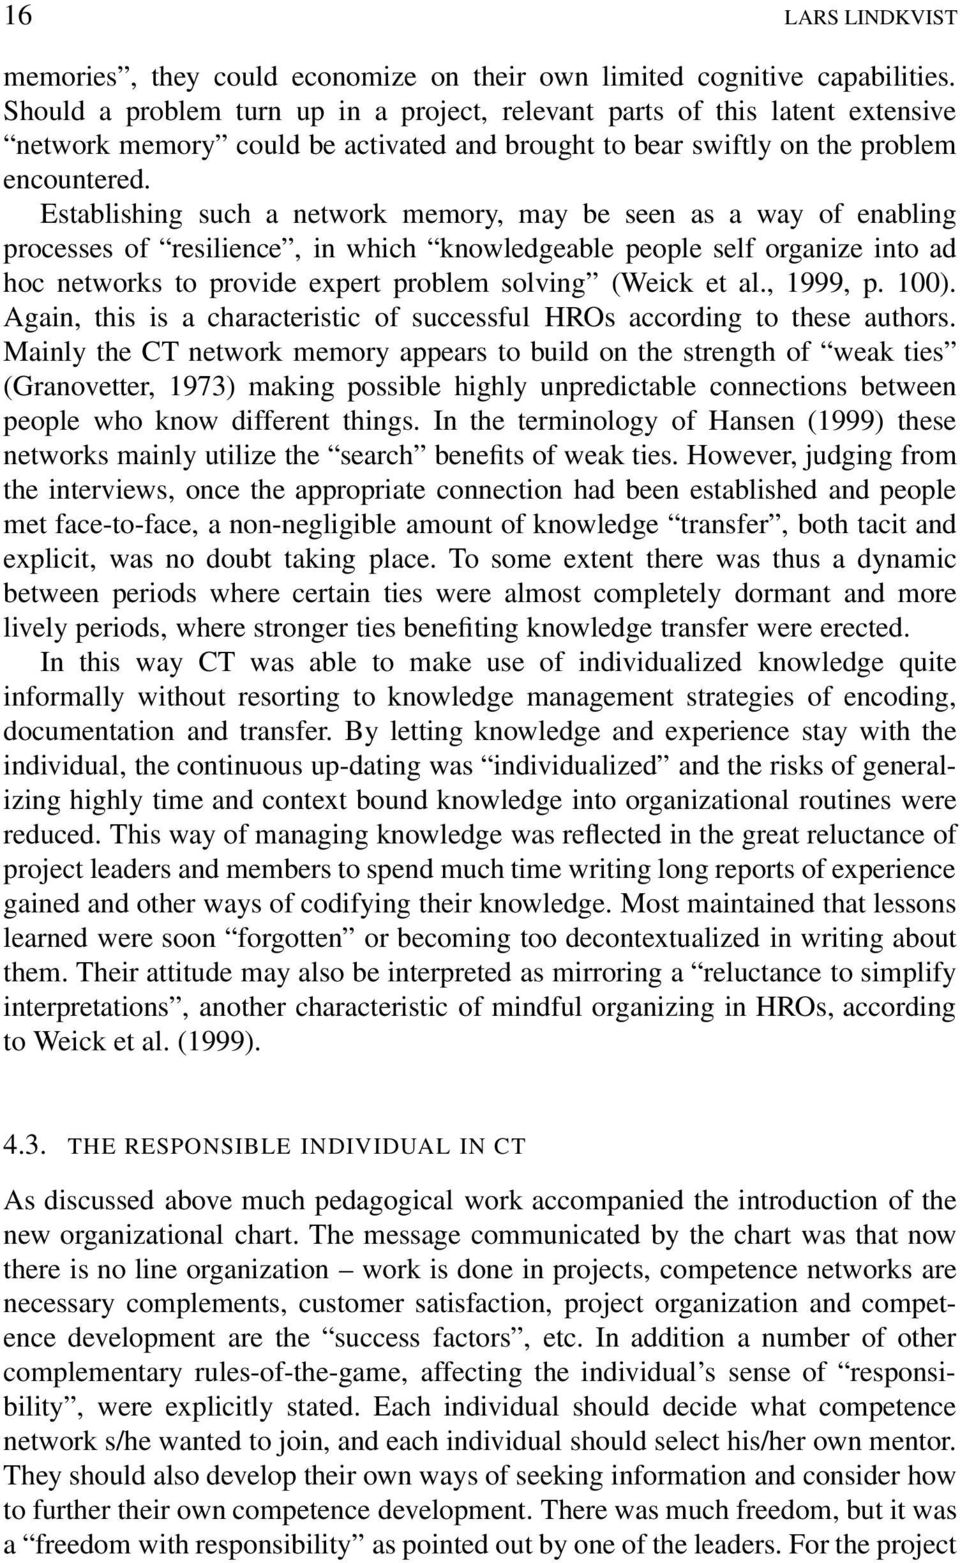 Establishing such a network memory, may be seen as a way of enabling processes of resilience, in which knowledgeable people self organize into ad hoc networks to provide expert problem solving (Weick